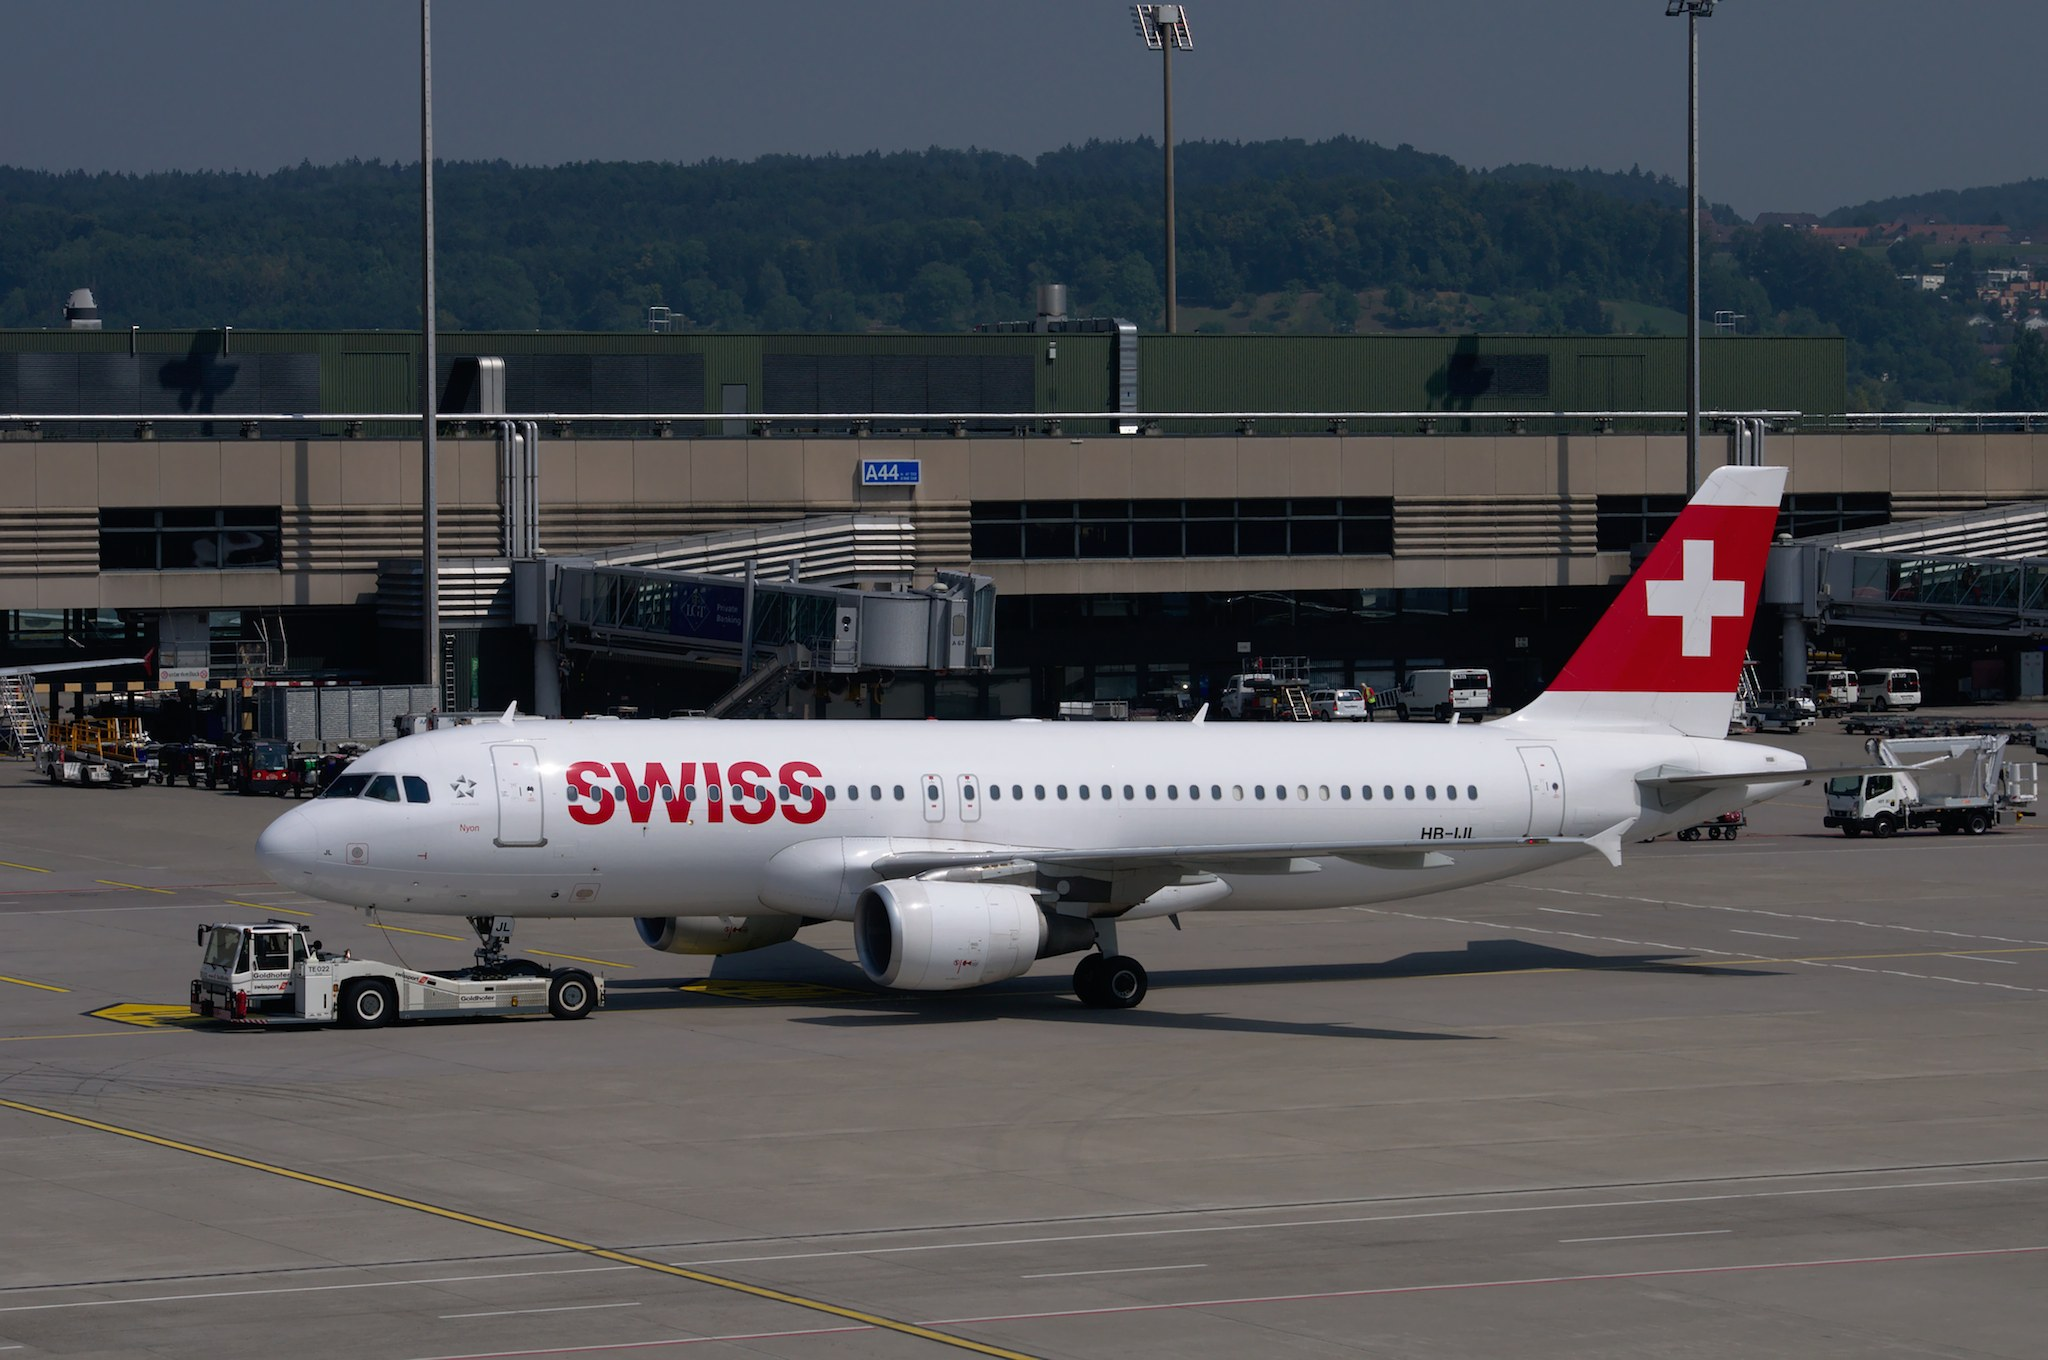 2015-08-12-ZRH 5885 par Norbert Aepli, Switzerland sous (CC BY 3.0) https://commons.wikimedia.org/wiki/File:2015-08-12-ZRH_5885.jpg#/media/File:2015-08-12-ZRH_5885.jpg http://creativecommons.org/licenses/by/3.0/